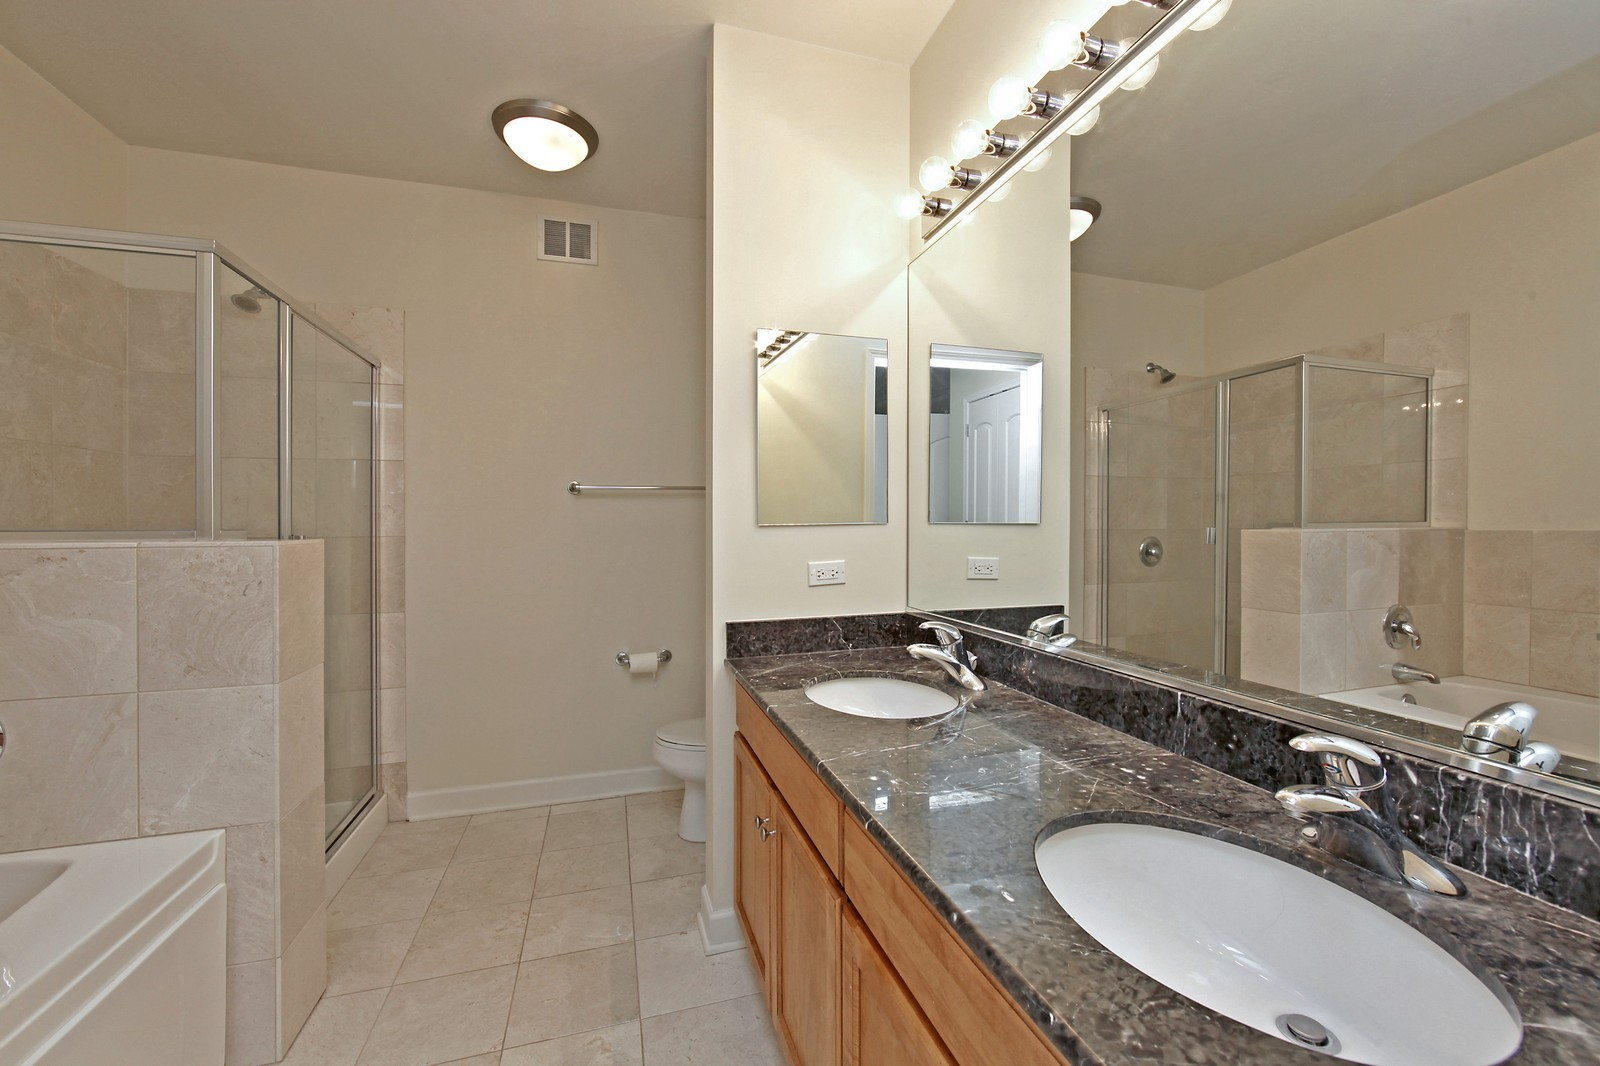 Real Estate Photography - 450 E Waterside, 708, Chicago, IL, 60601 - Master Bathroom